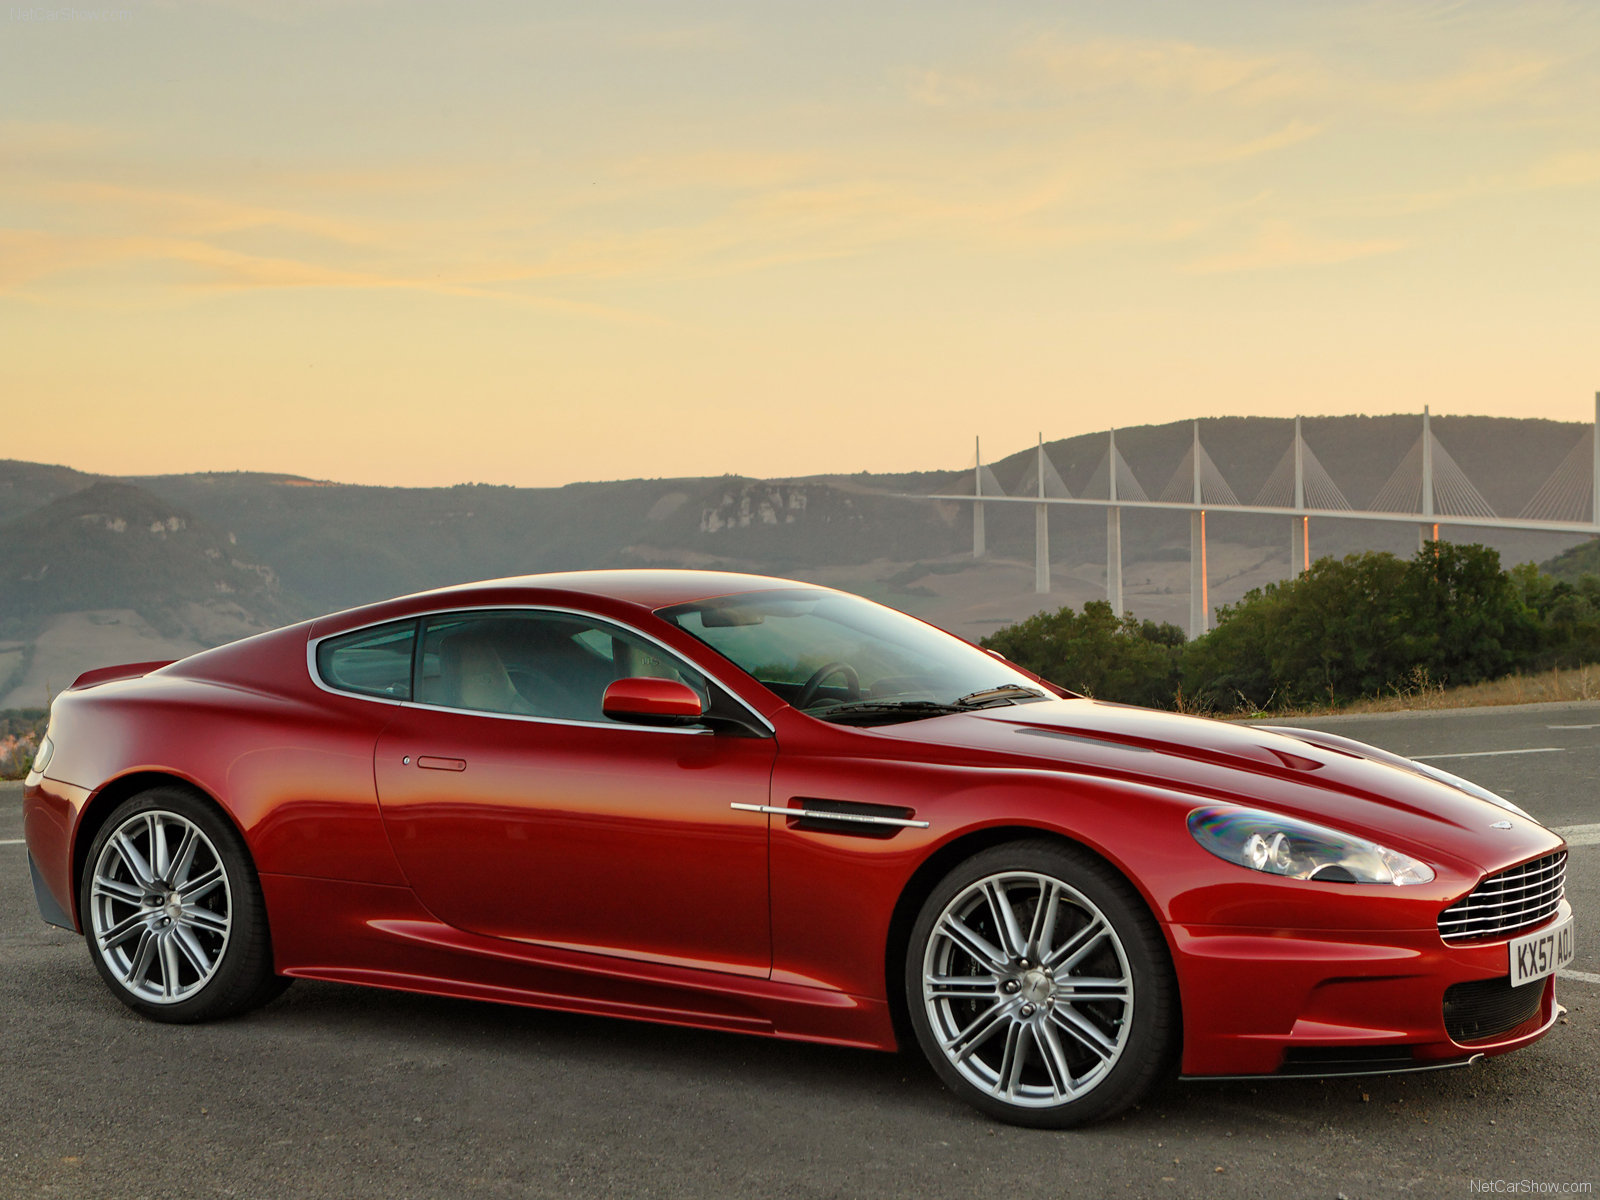 You can vote for this Aston Martin DBS Infa Red photo